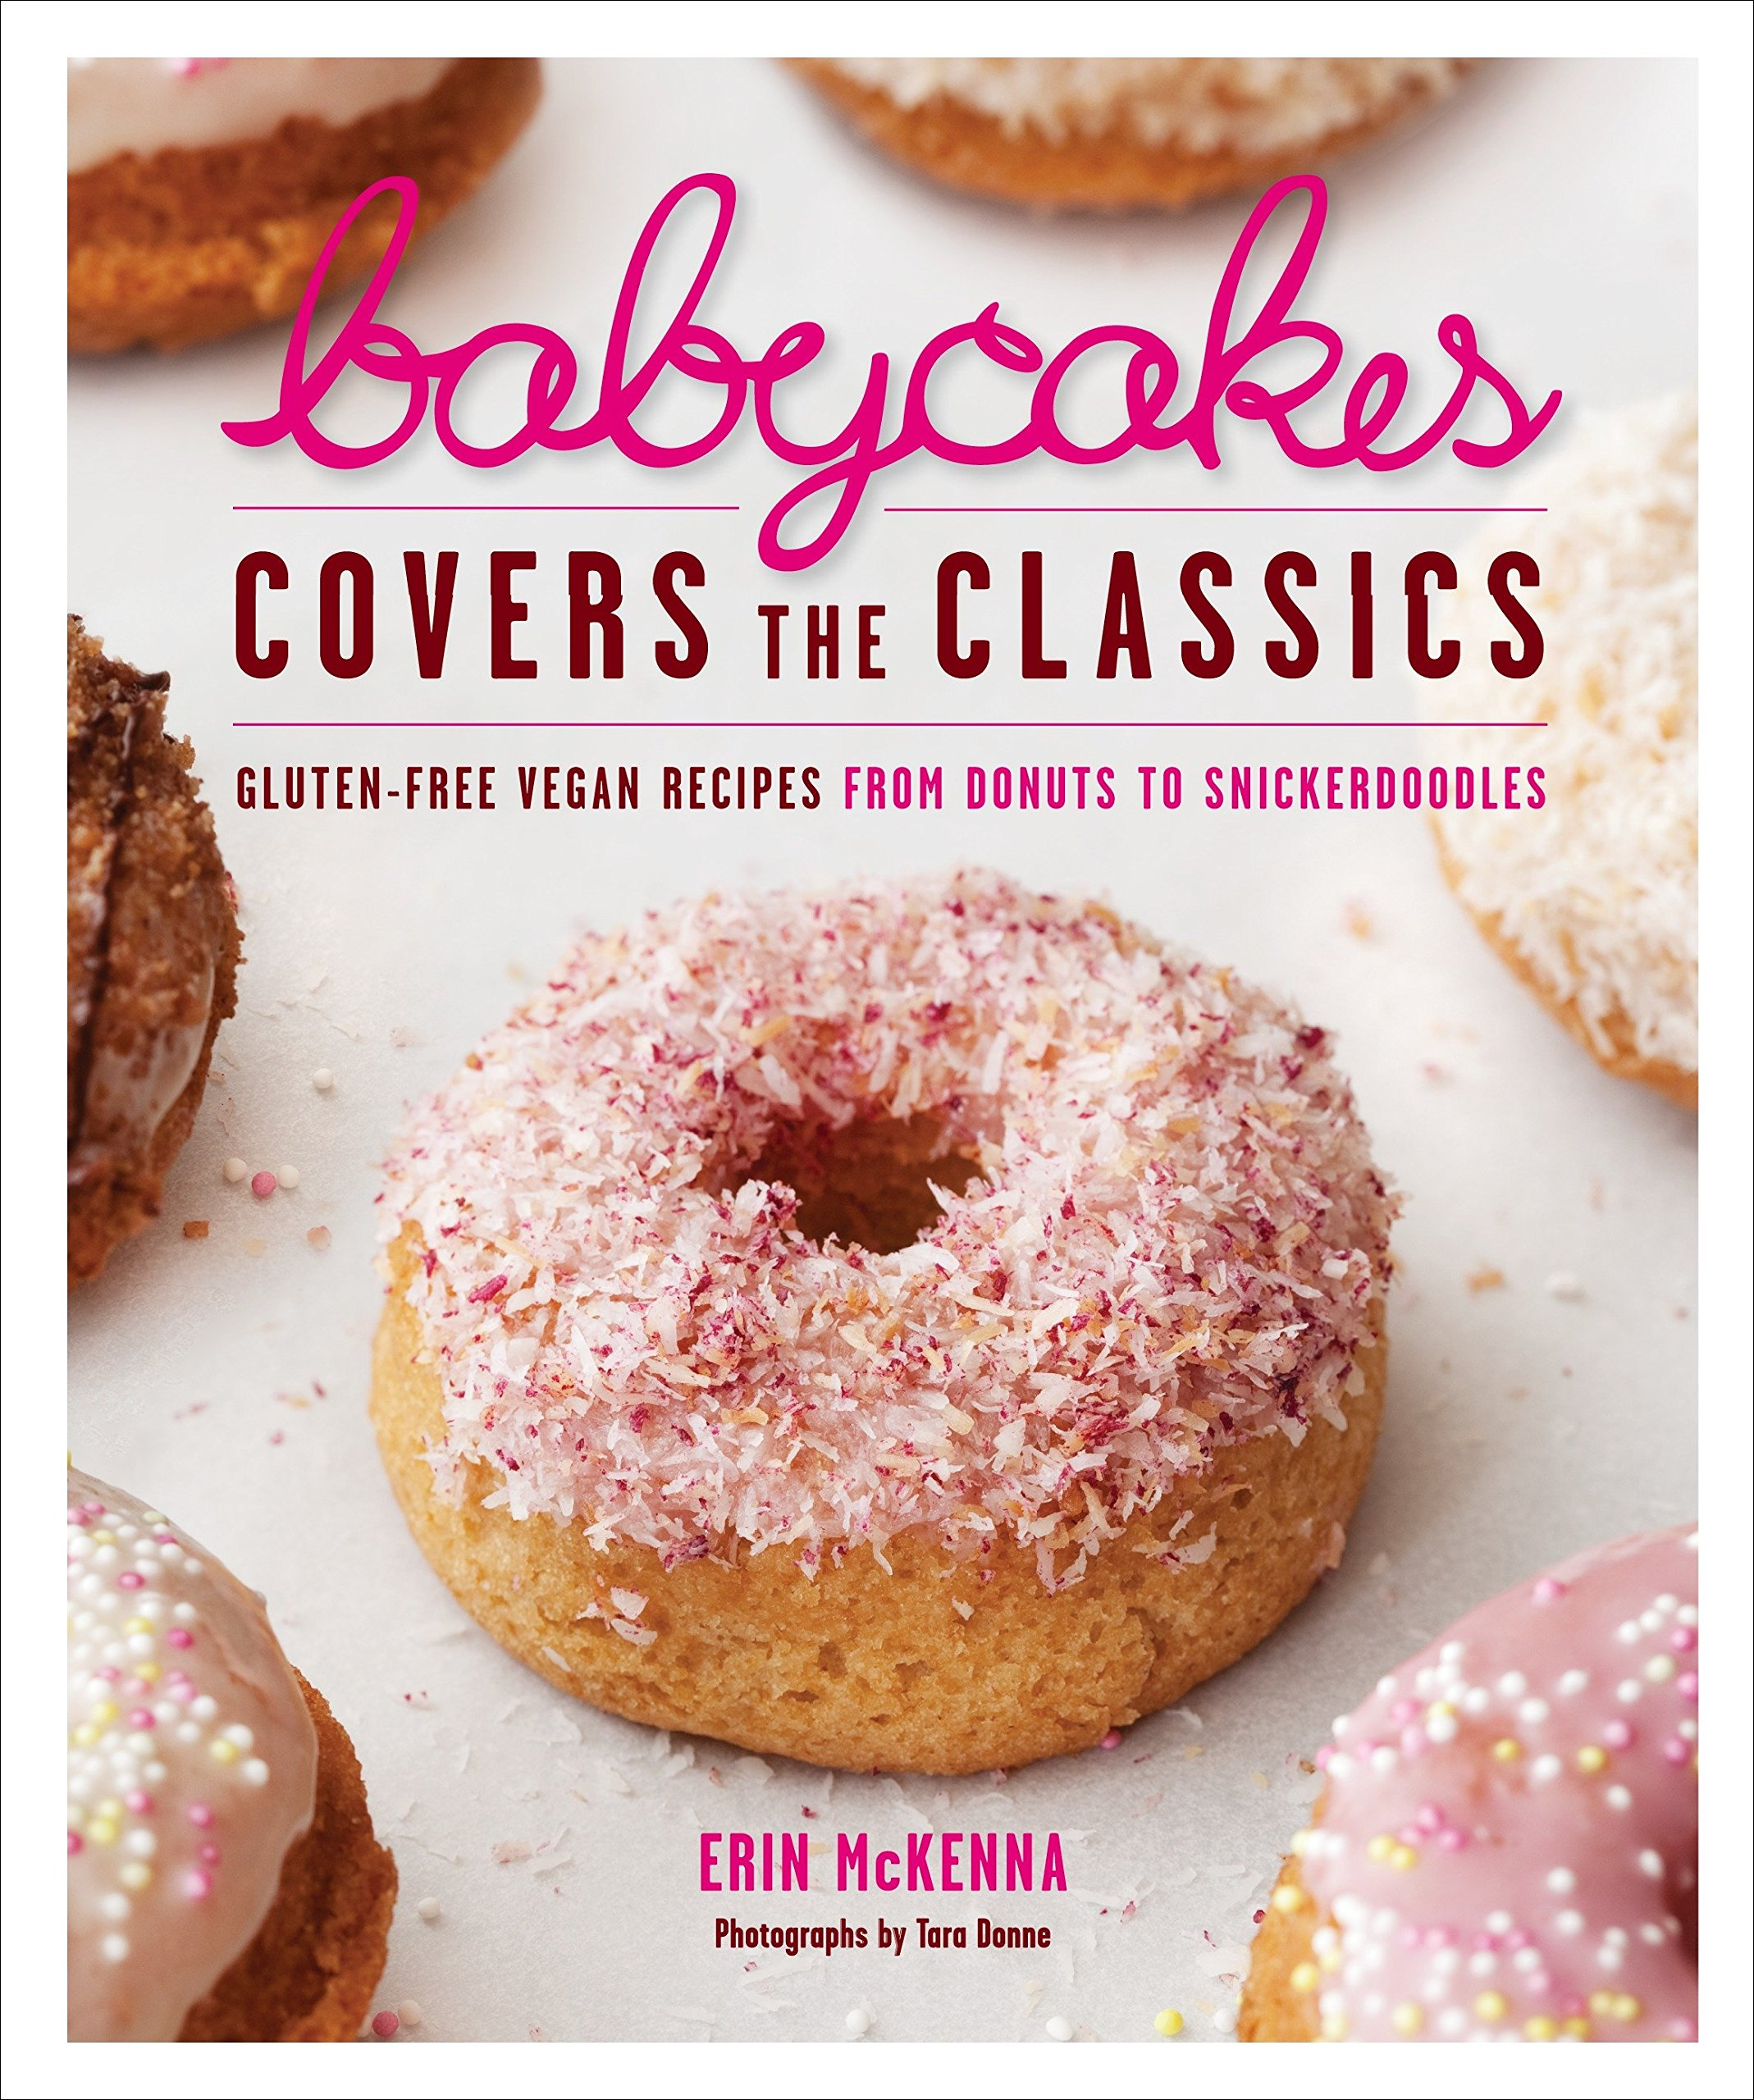 BabyCakes Covers the Classics: Gluten-Free Vegan Recipes from Donuts to Snickerdoodles: A Baking Book by Clarkson Potter